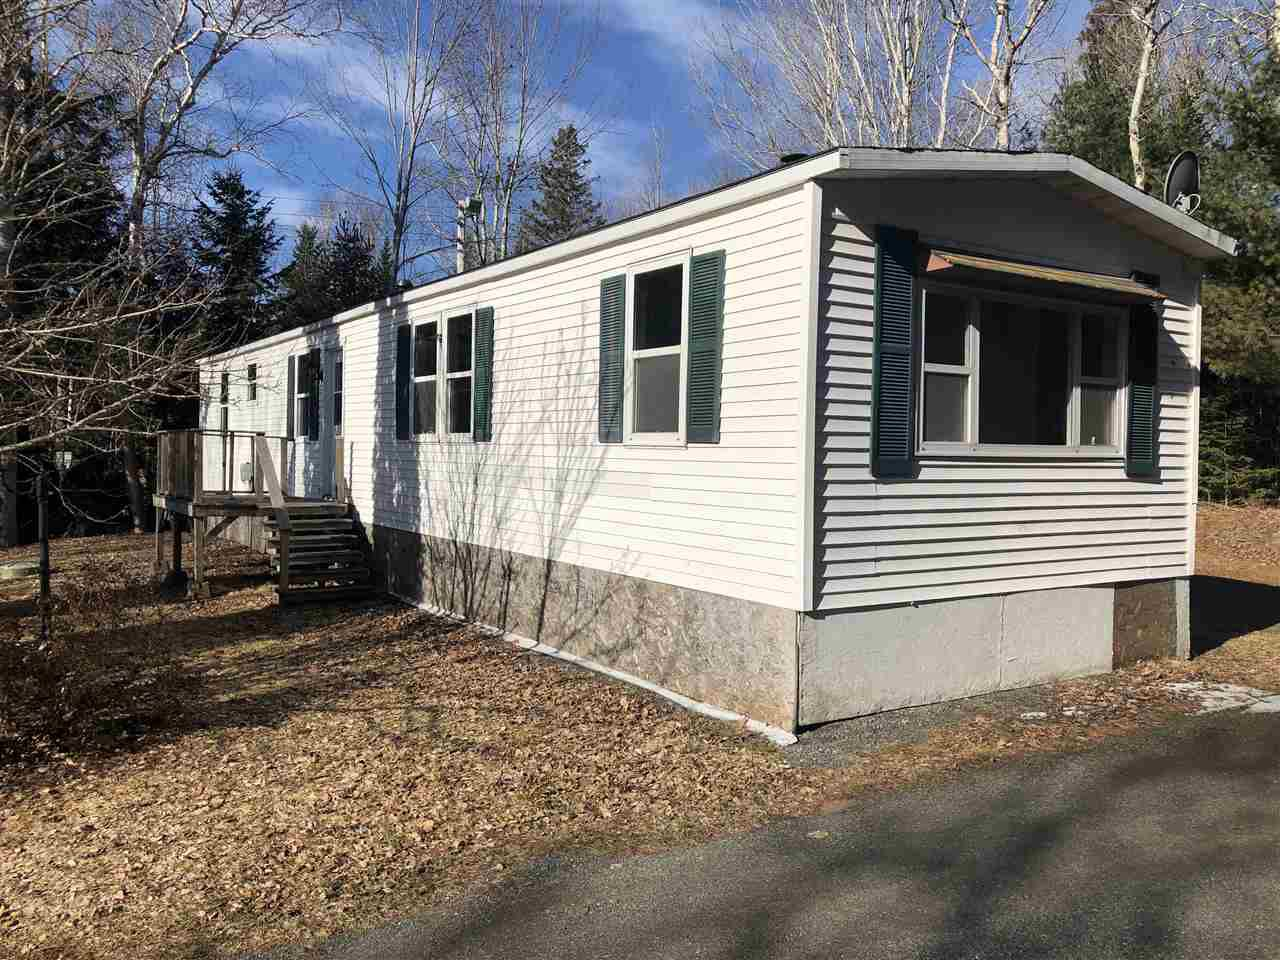 Main Photo: 1575 Highway 376 in Durham: 108-Rural Pictou County Residential for sale (Northern Region)  : MLS®# 201904622